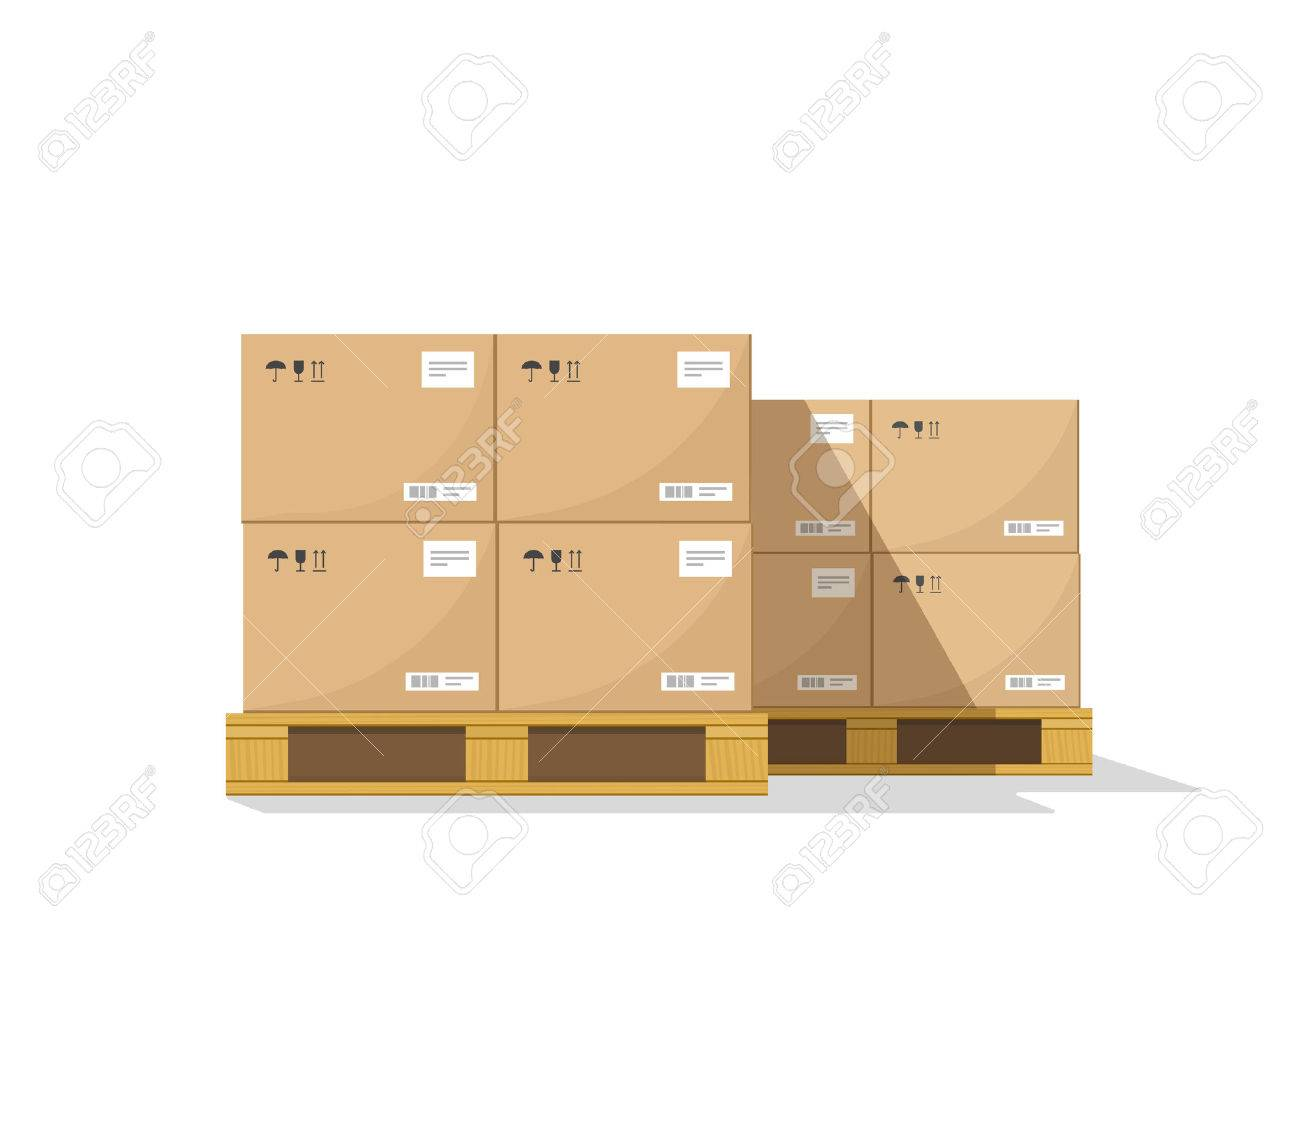 Warehouse parts boxes on wooden pallet vector illustration with shadow, cardboard cargo boxes, barcode, pictograms and abstract text stickers ready for loading, flat cartoon design isolated on white - 56657219